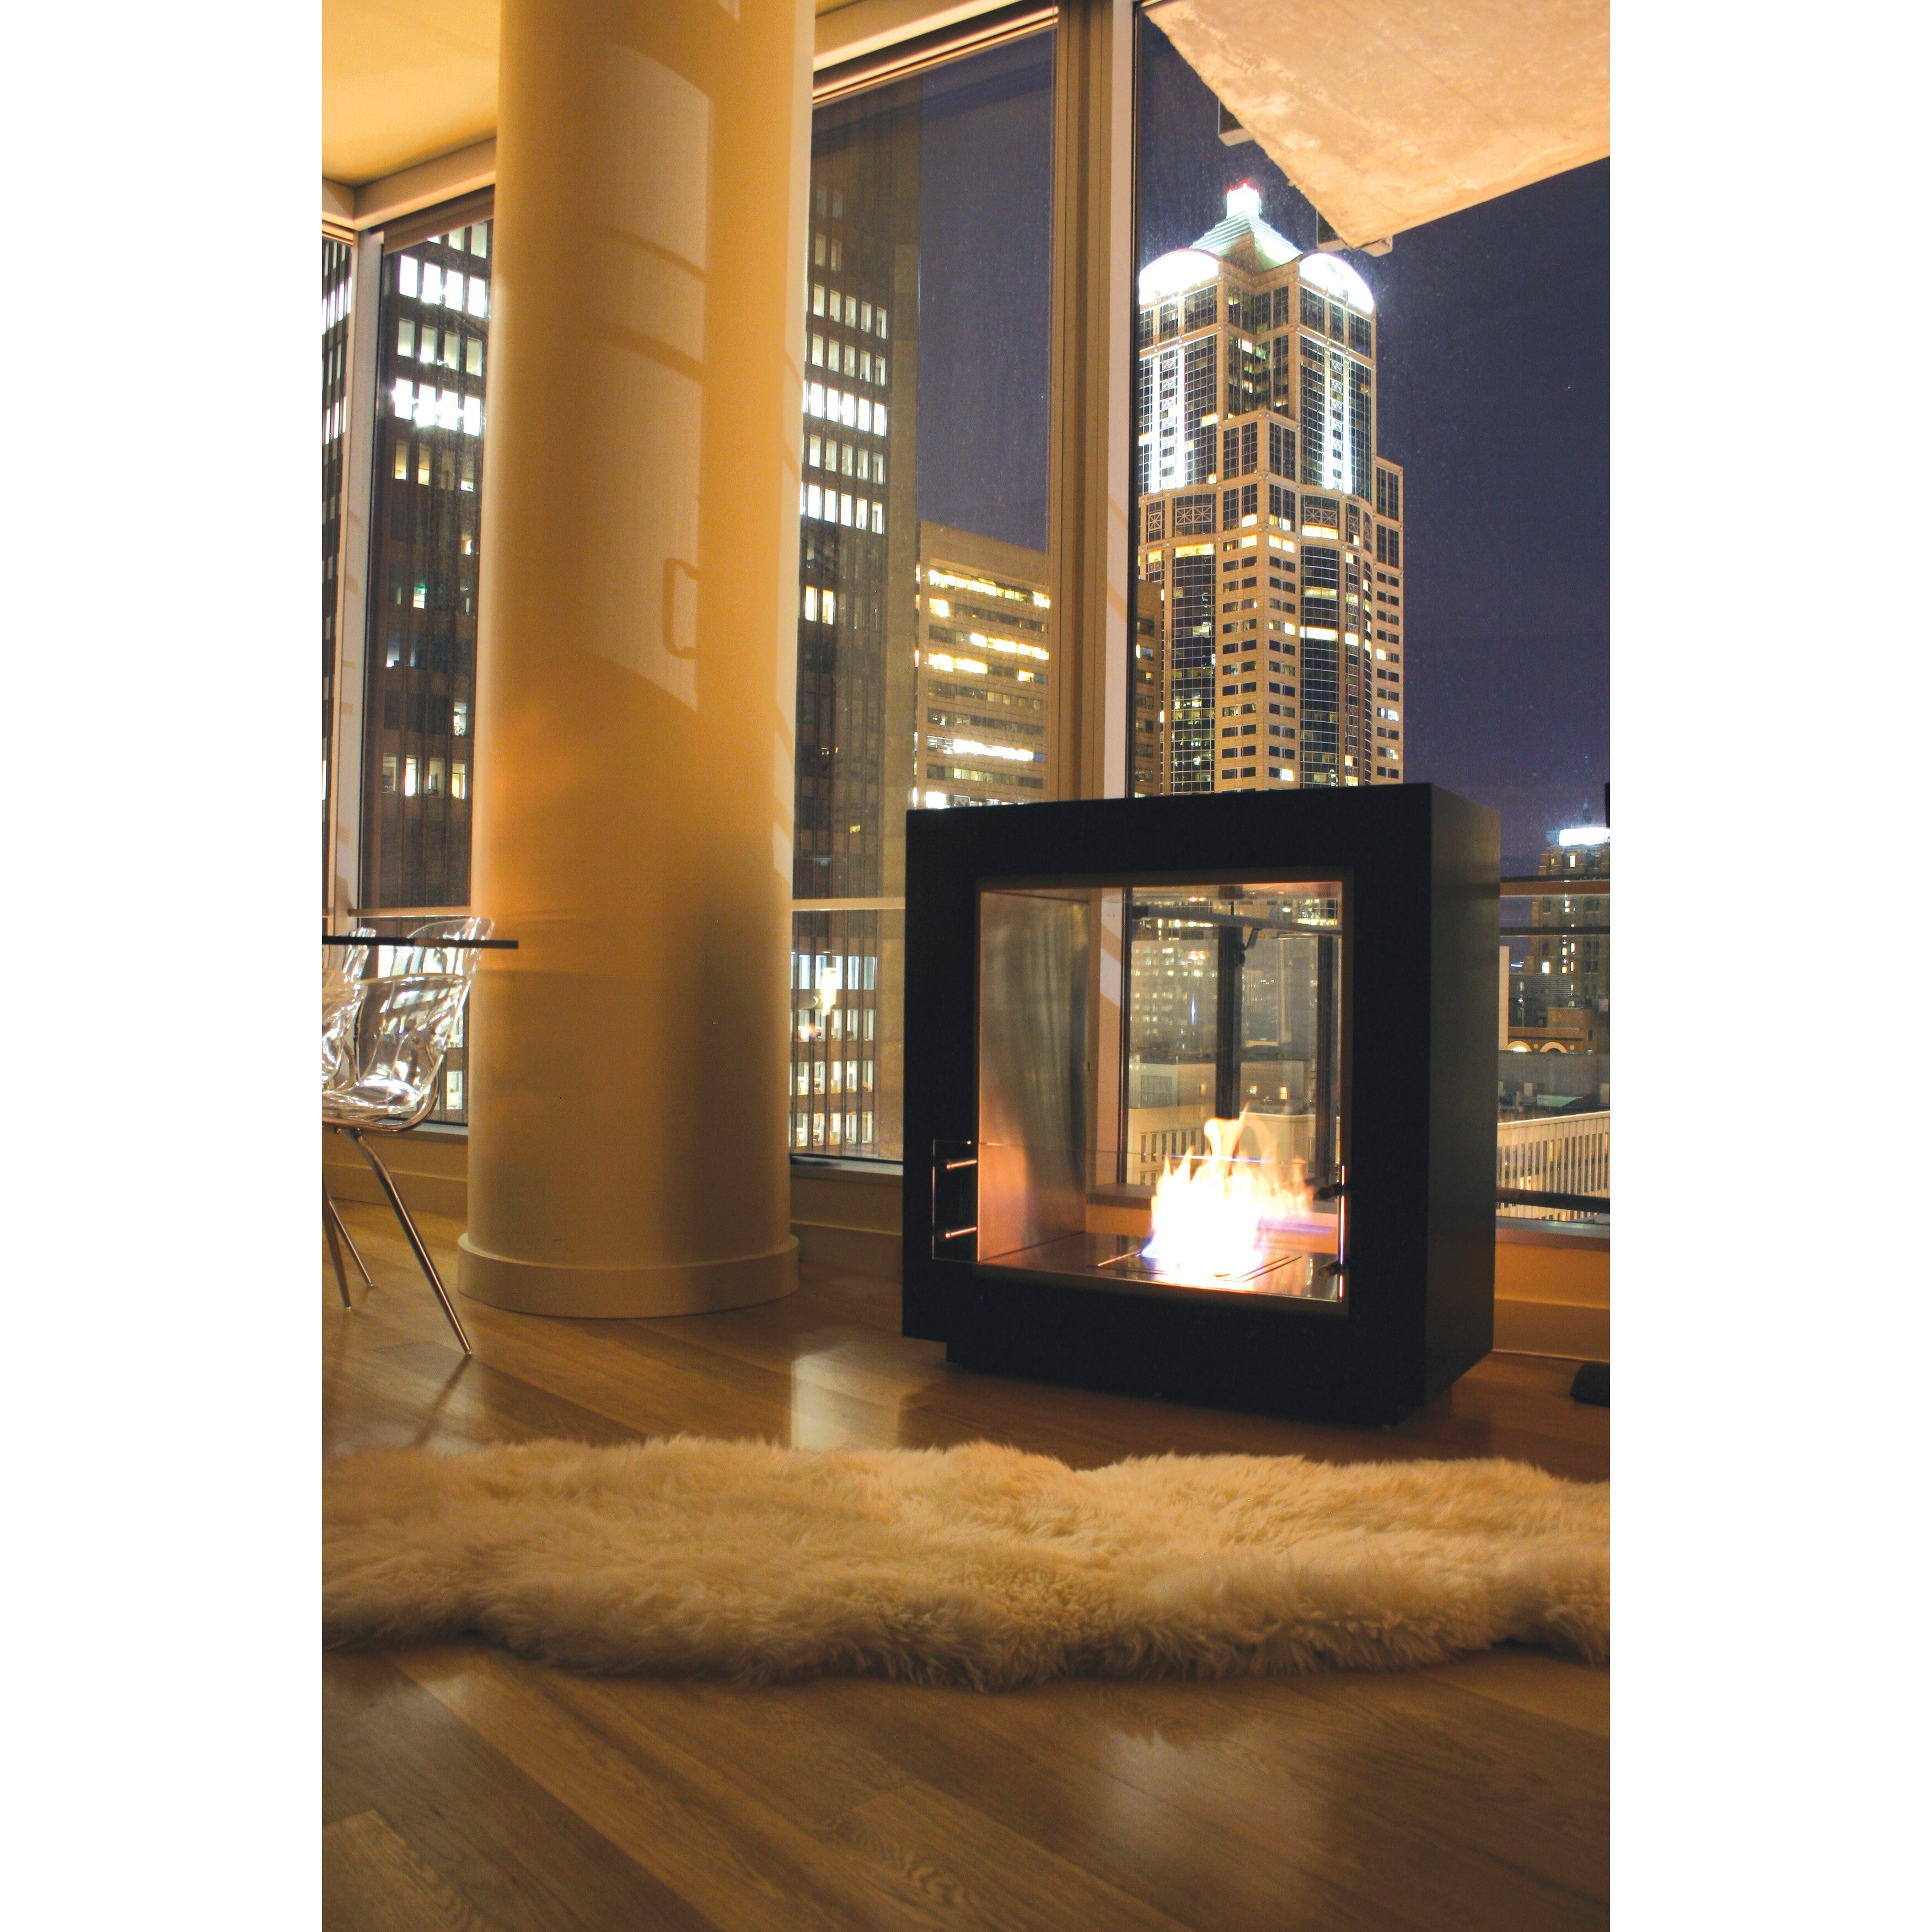 photo these fire residence fireplaces stock to and their include install lines jap ecosmart easy fireplace eco model ss smart